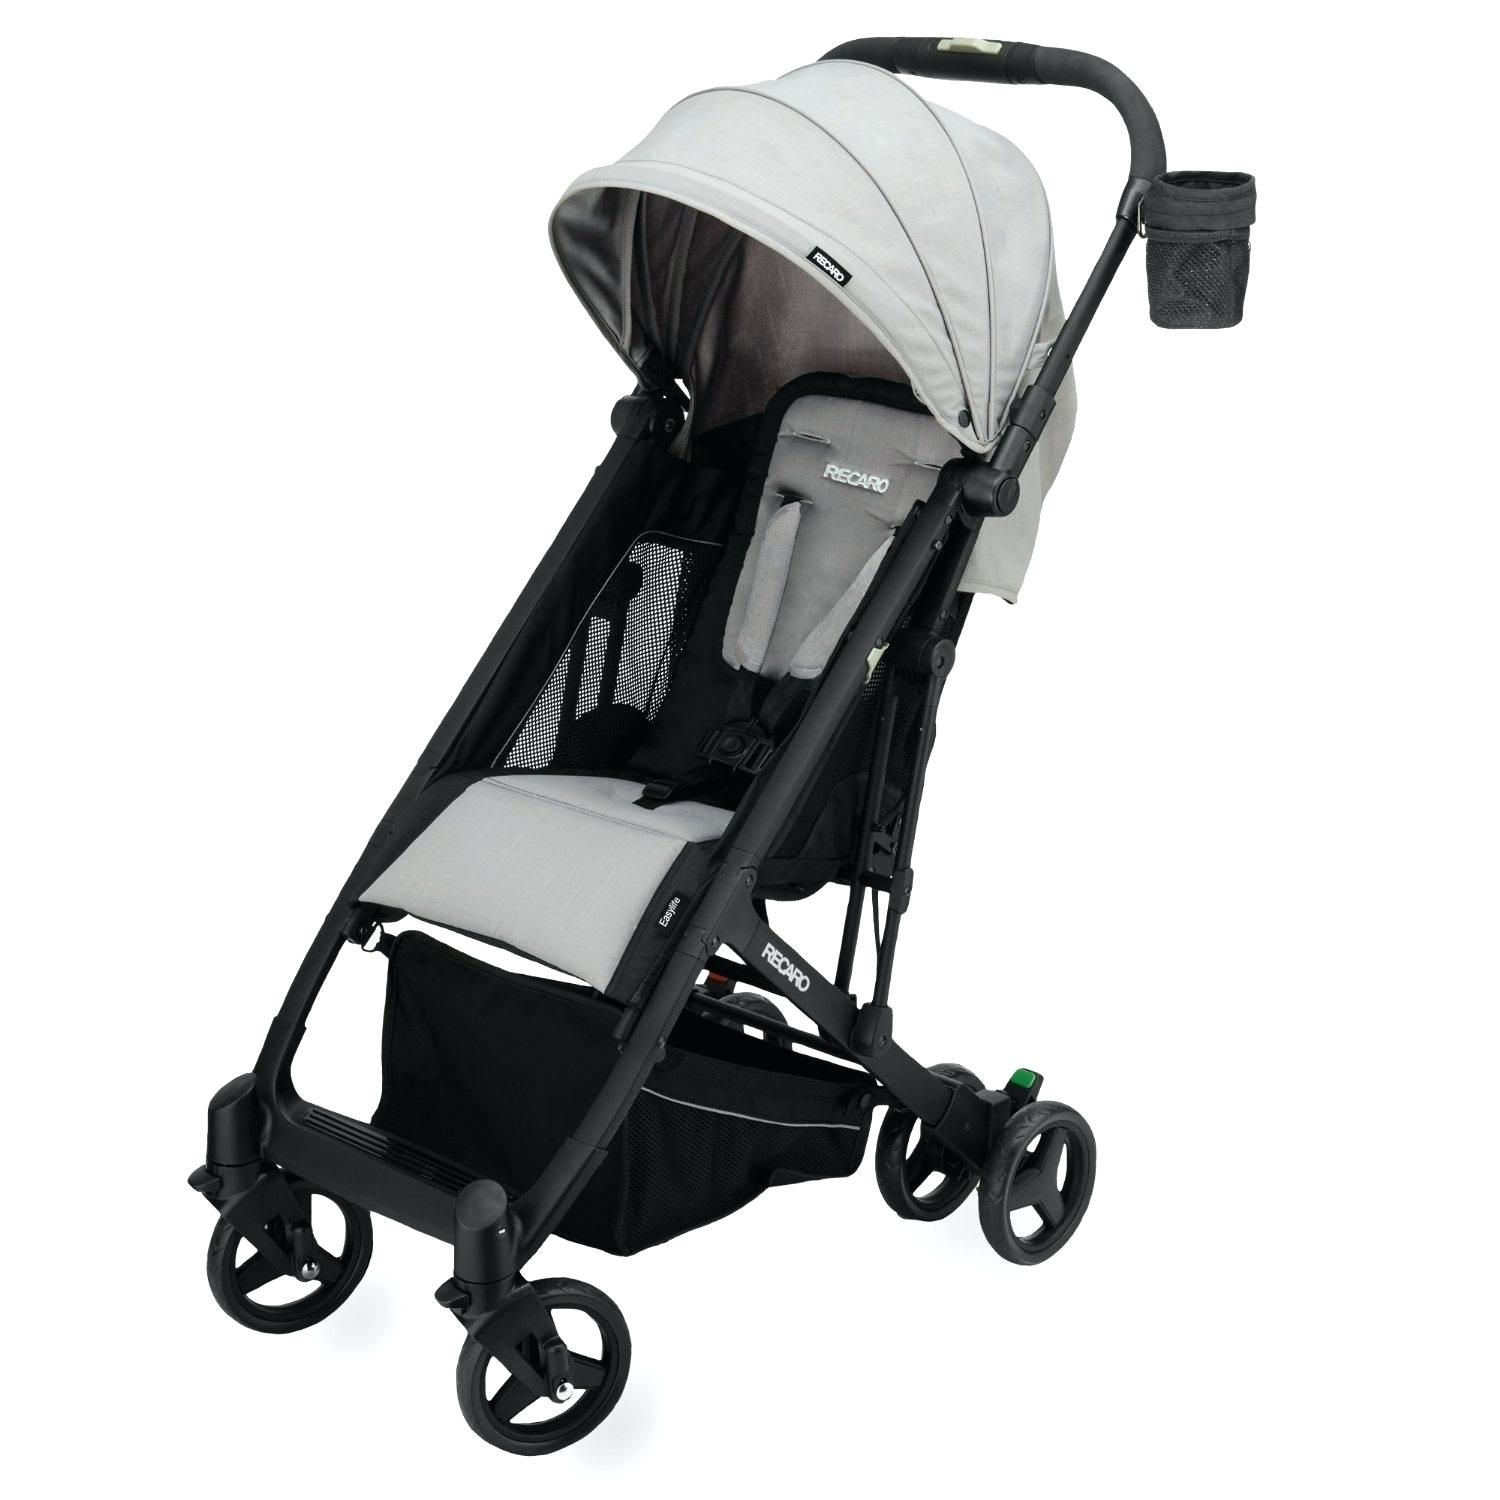 Recaro Easylife Stroller in Granite Brand New Similar To Nano Brand New in Baby Baby Gear Other Baby Gear